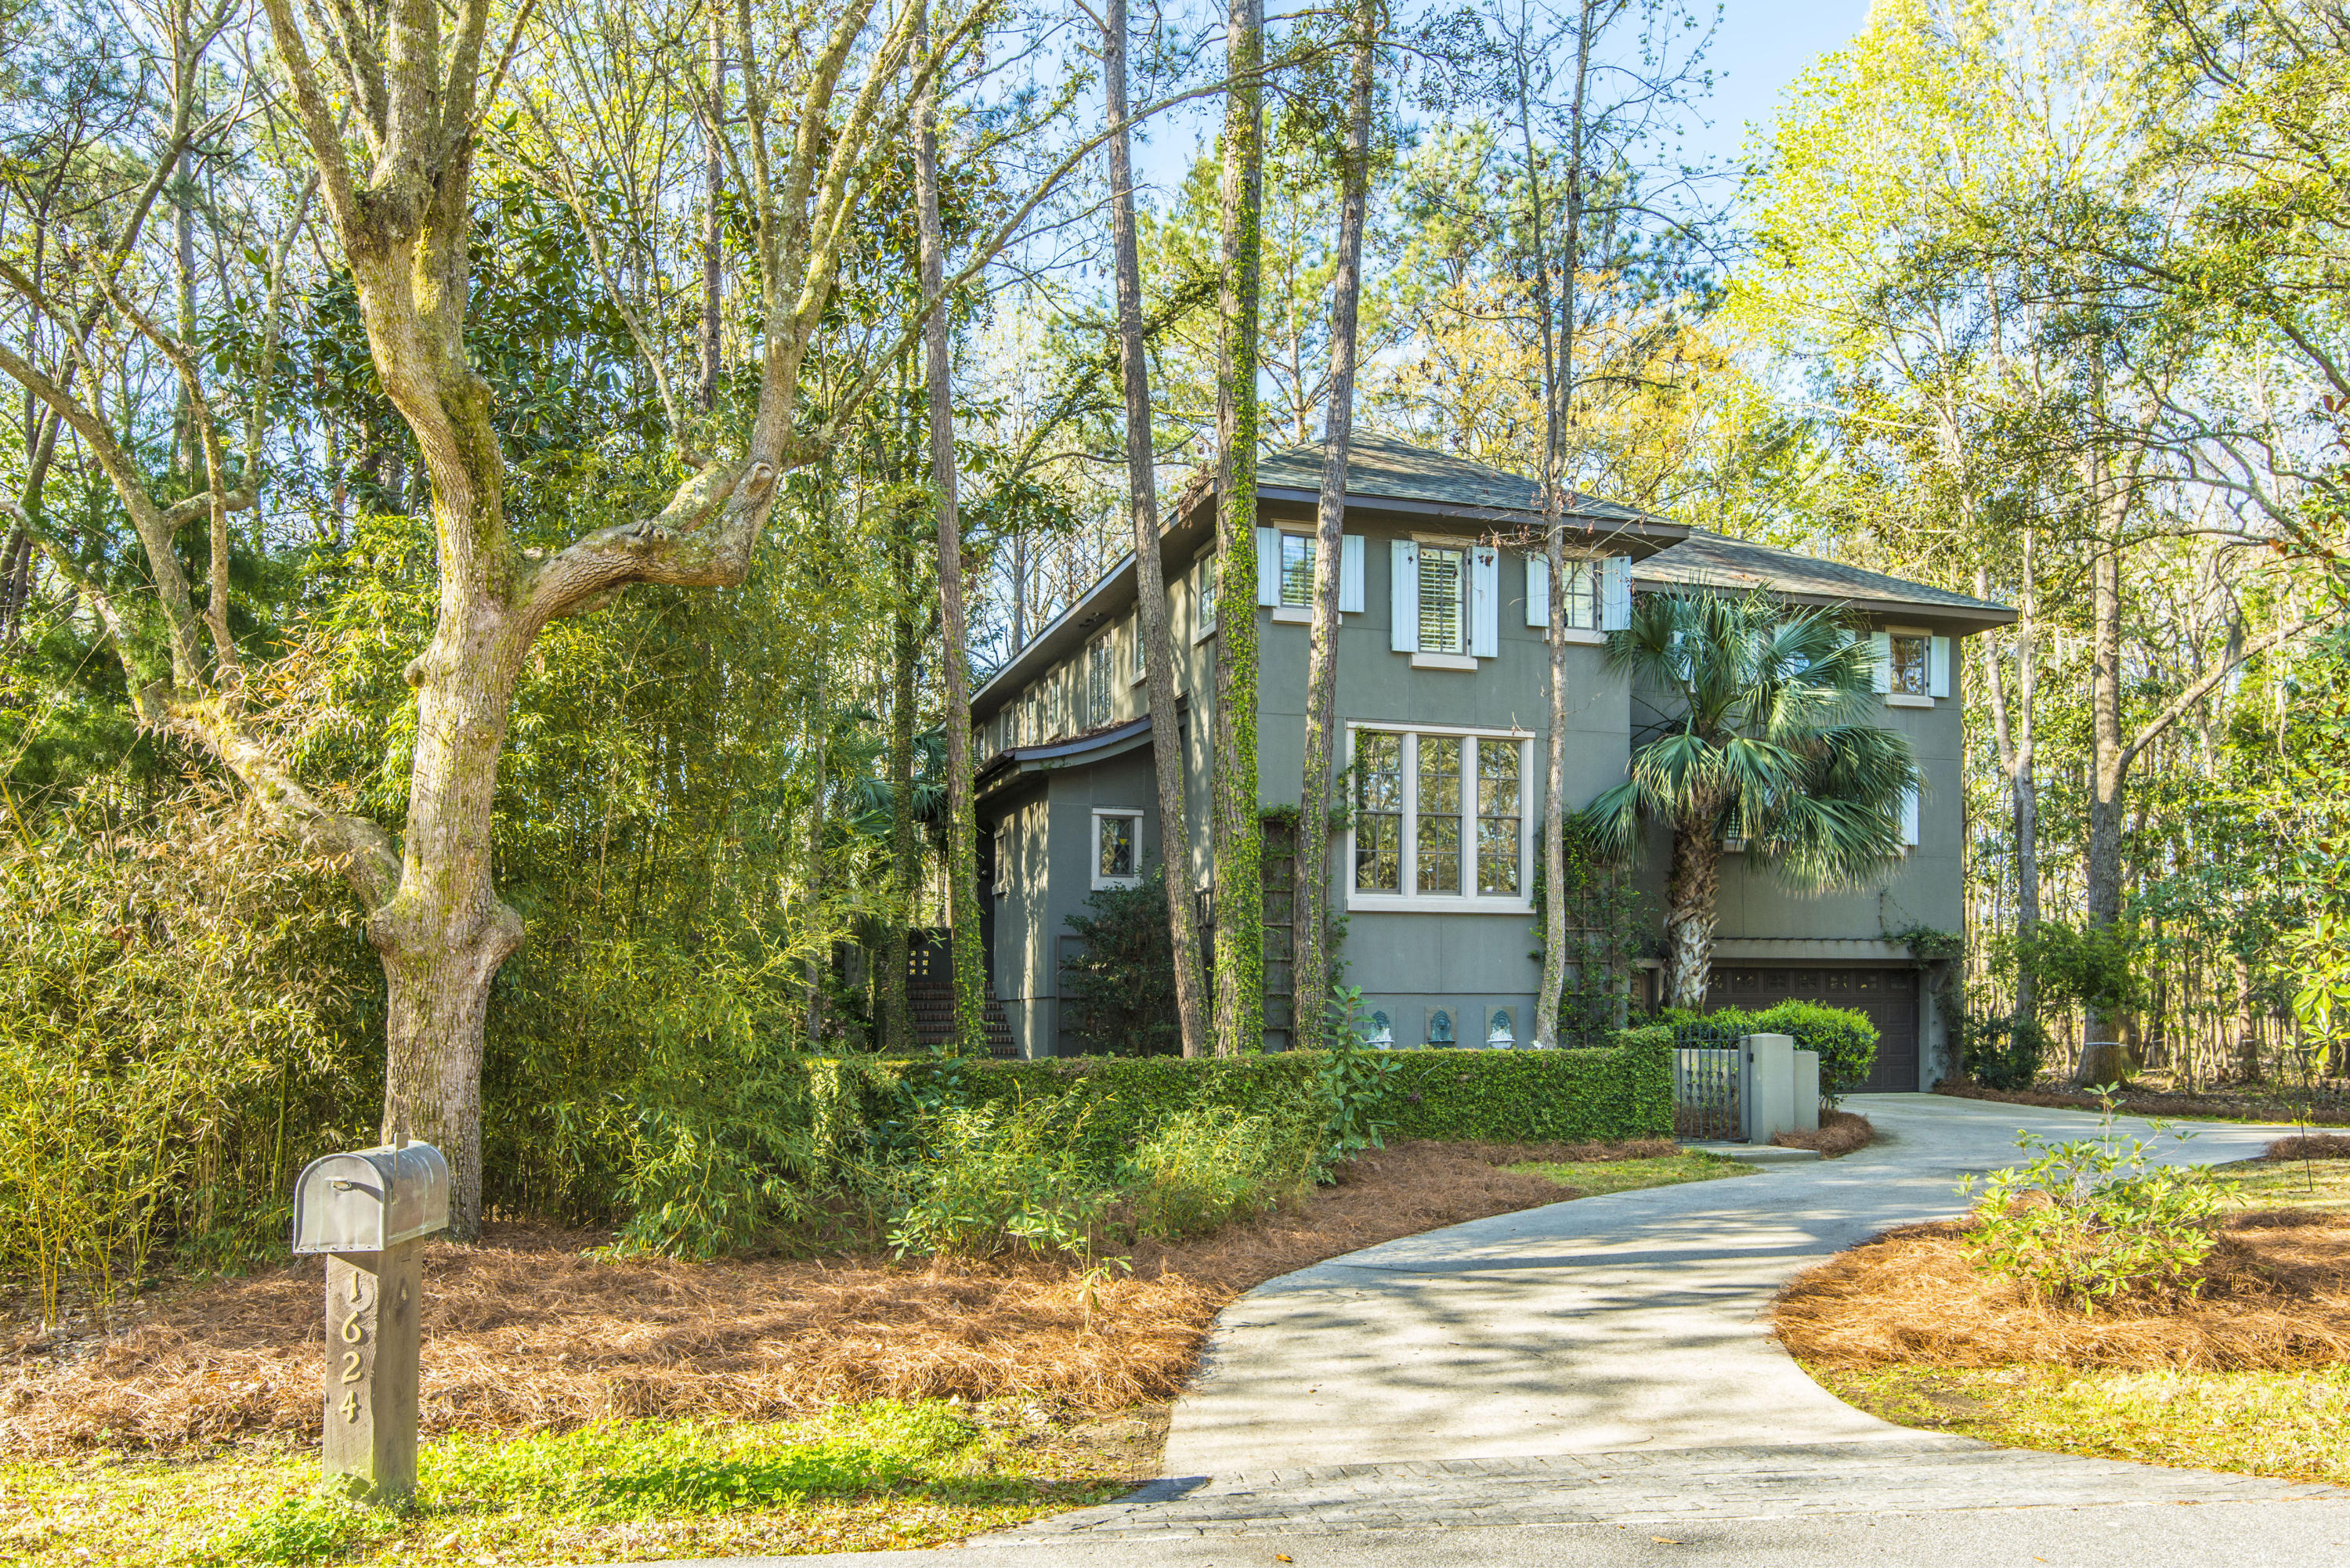 Home for sale 1624 John Fenwick Lane, The Preserve At Fenwick Plantation, Johns Island, SC